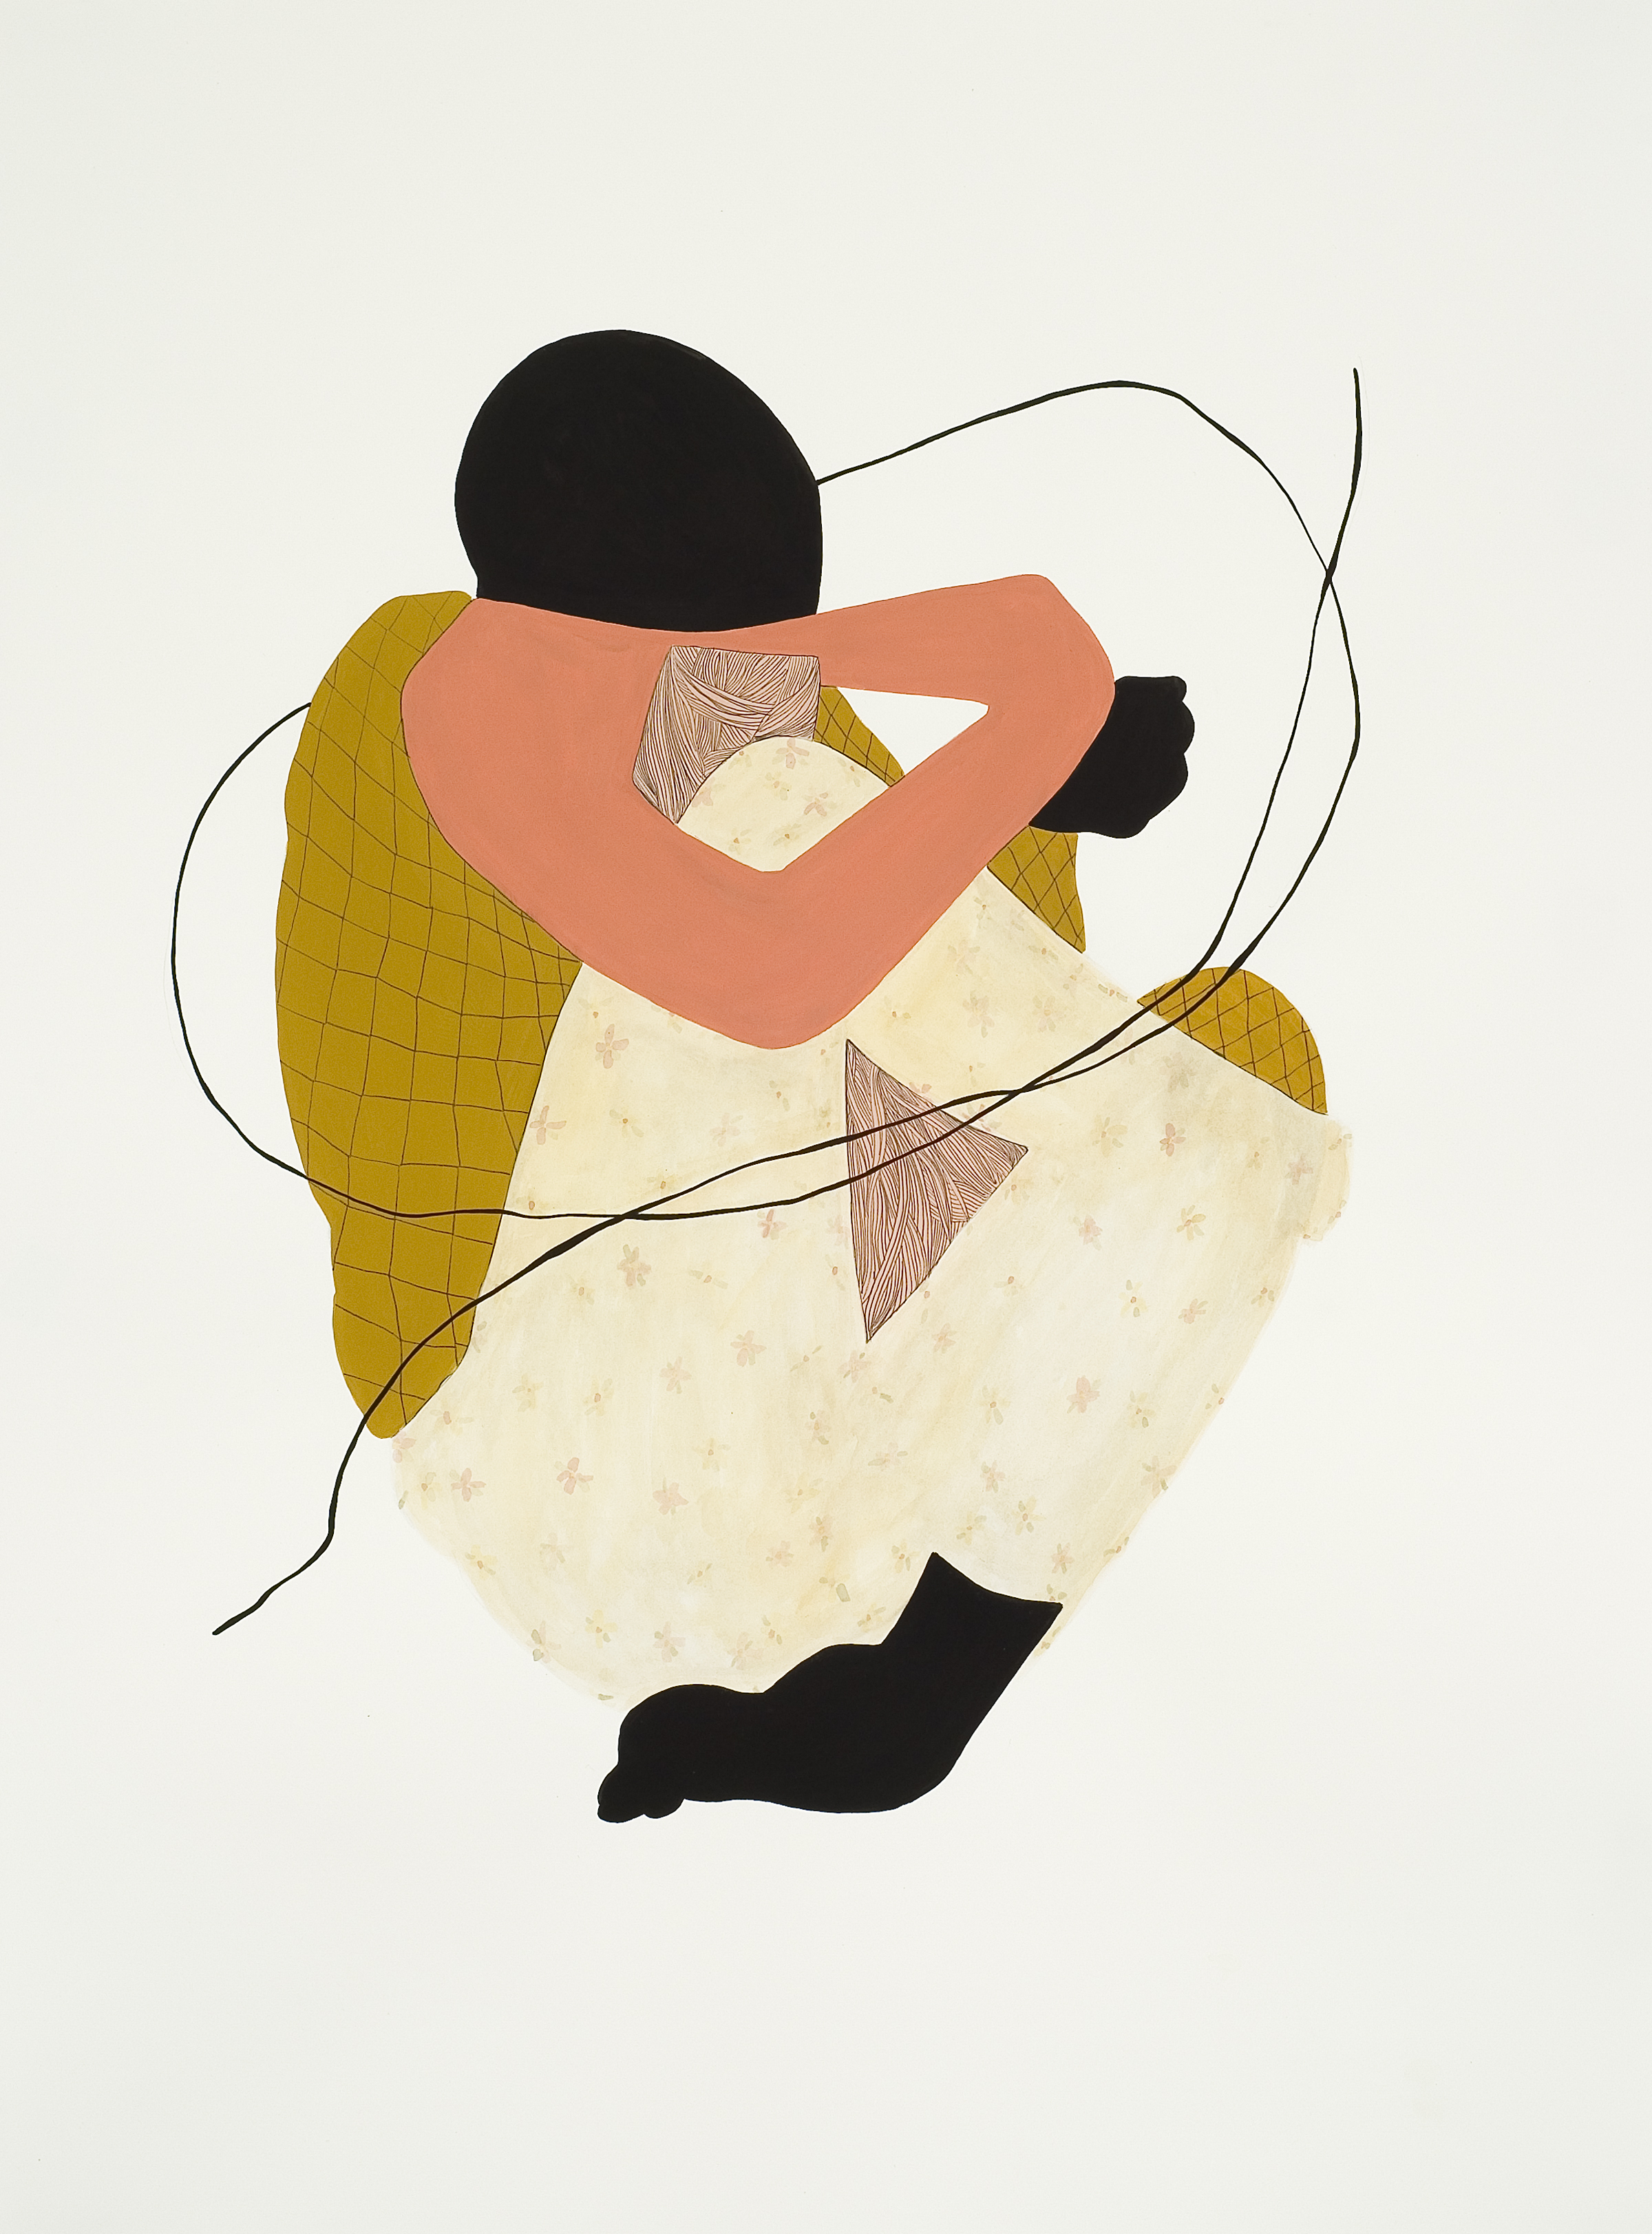 Knot, 2012